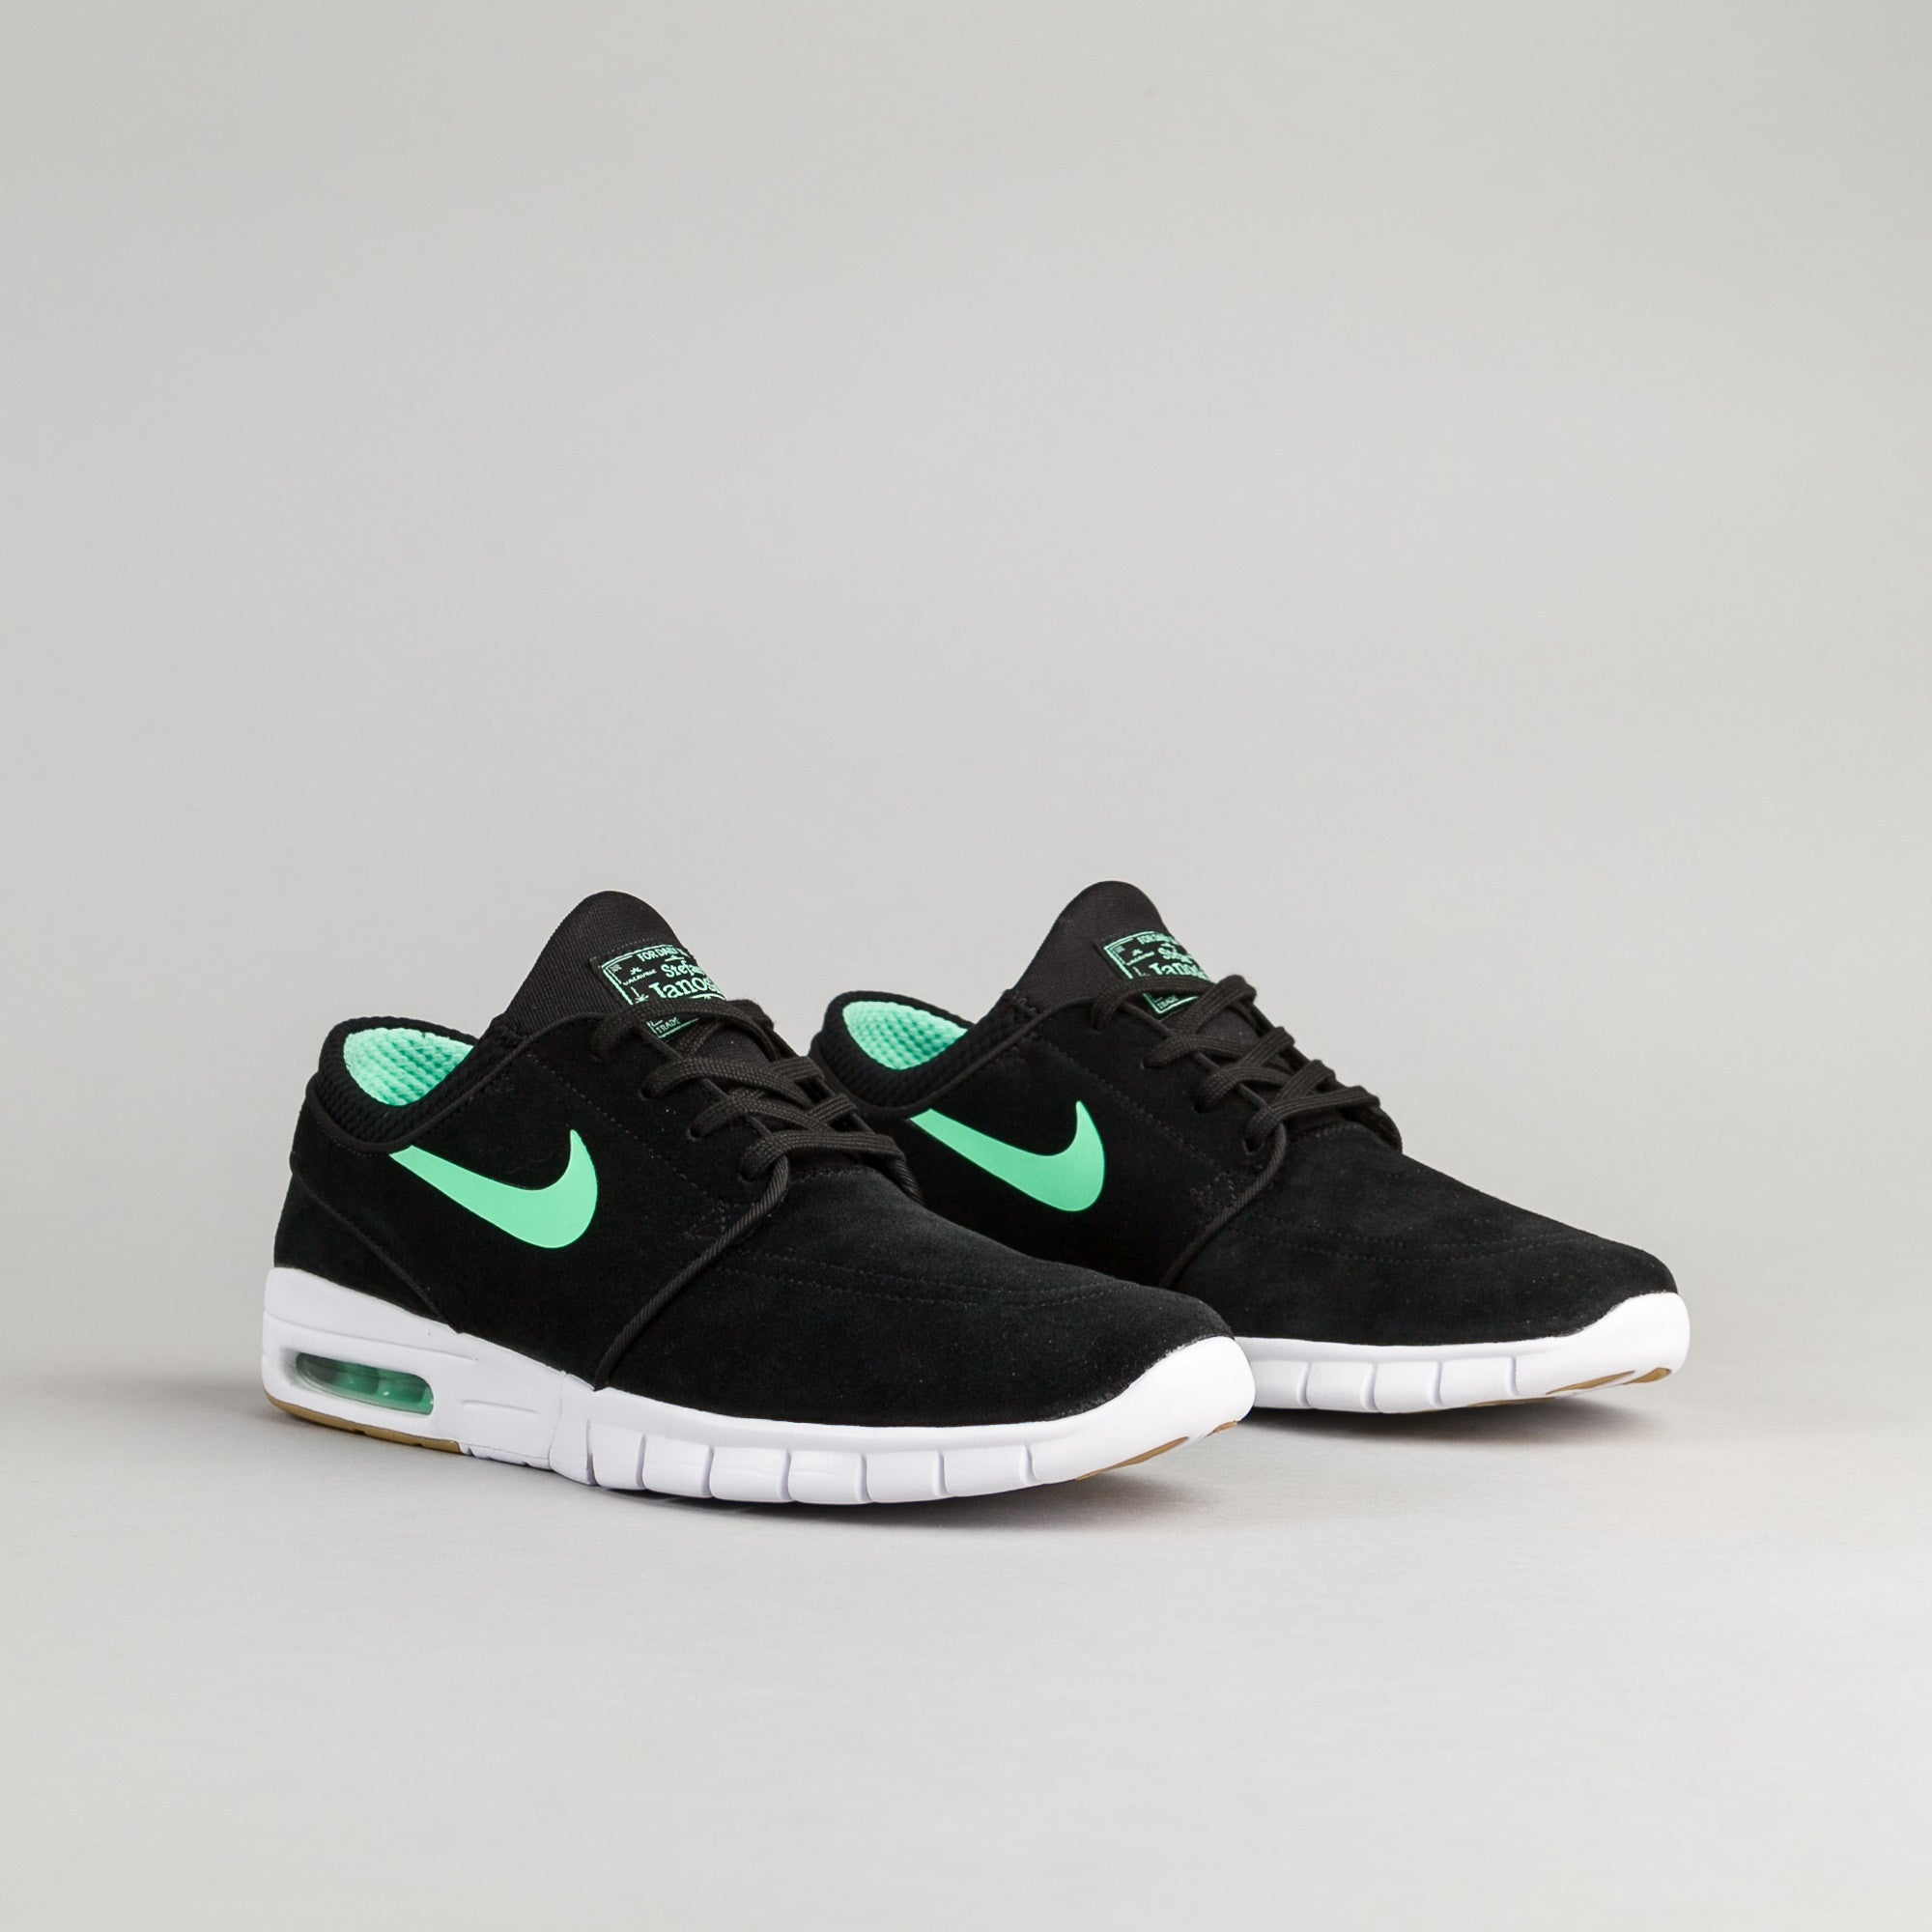 nike sb stefan janoski max suede shoes black green glow white flatspot. Black Bedroom Furniture Sets. Home Design Ideas